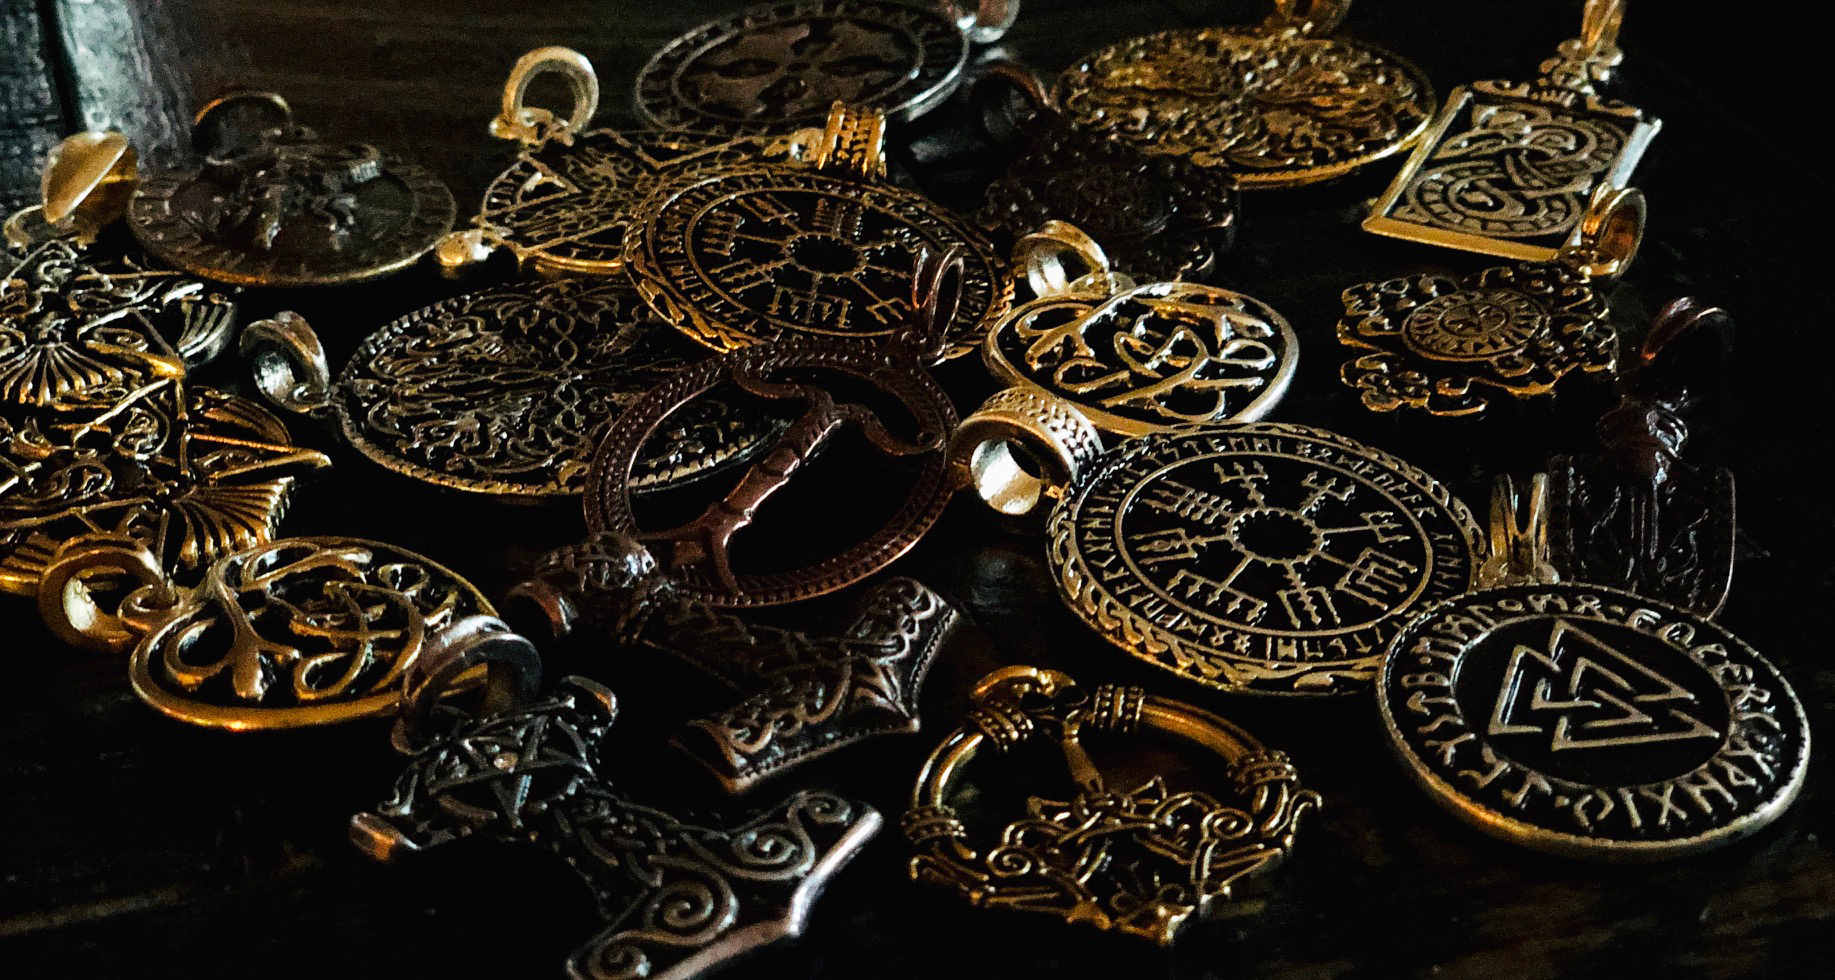 viking-jewelry-amulets.jpg